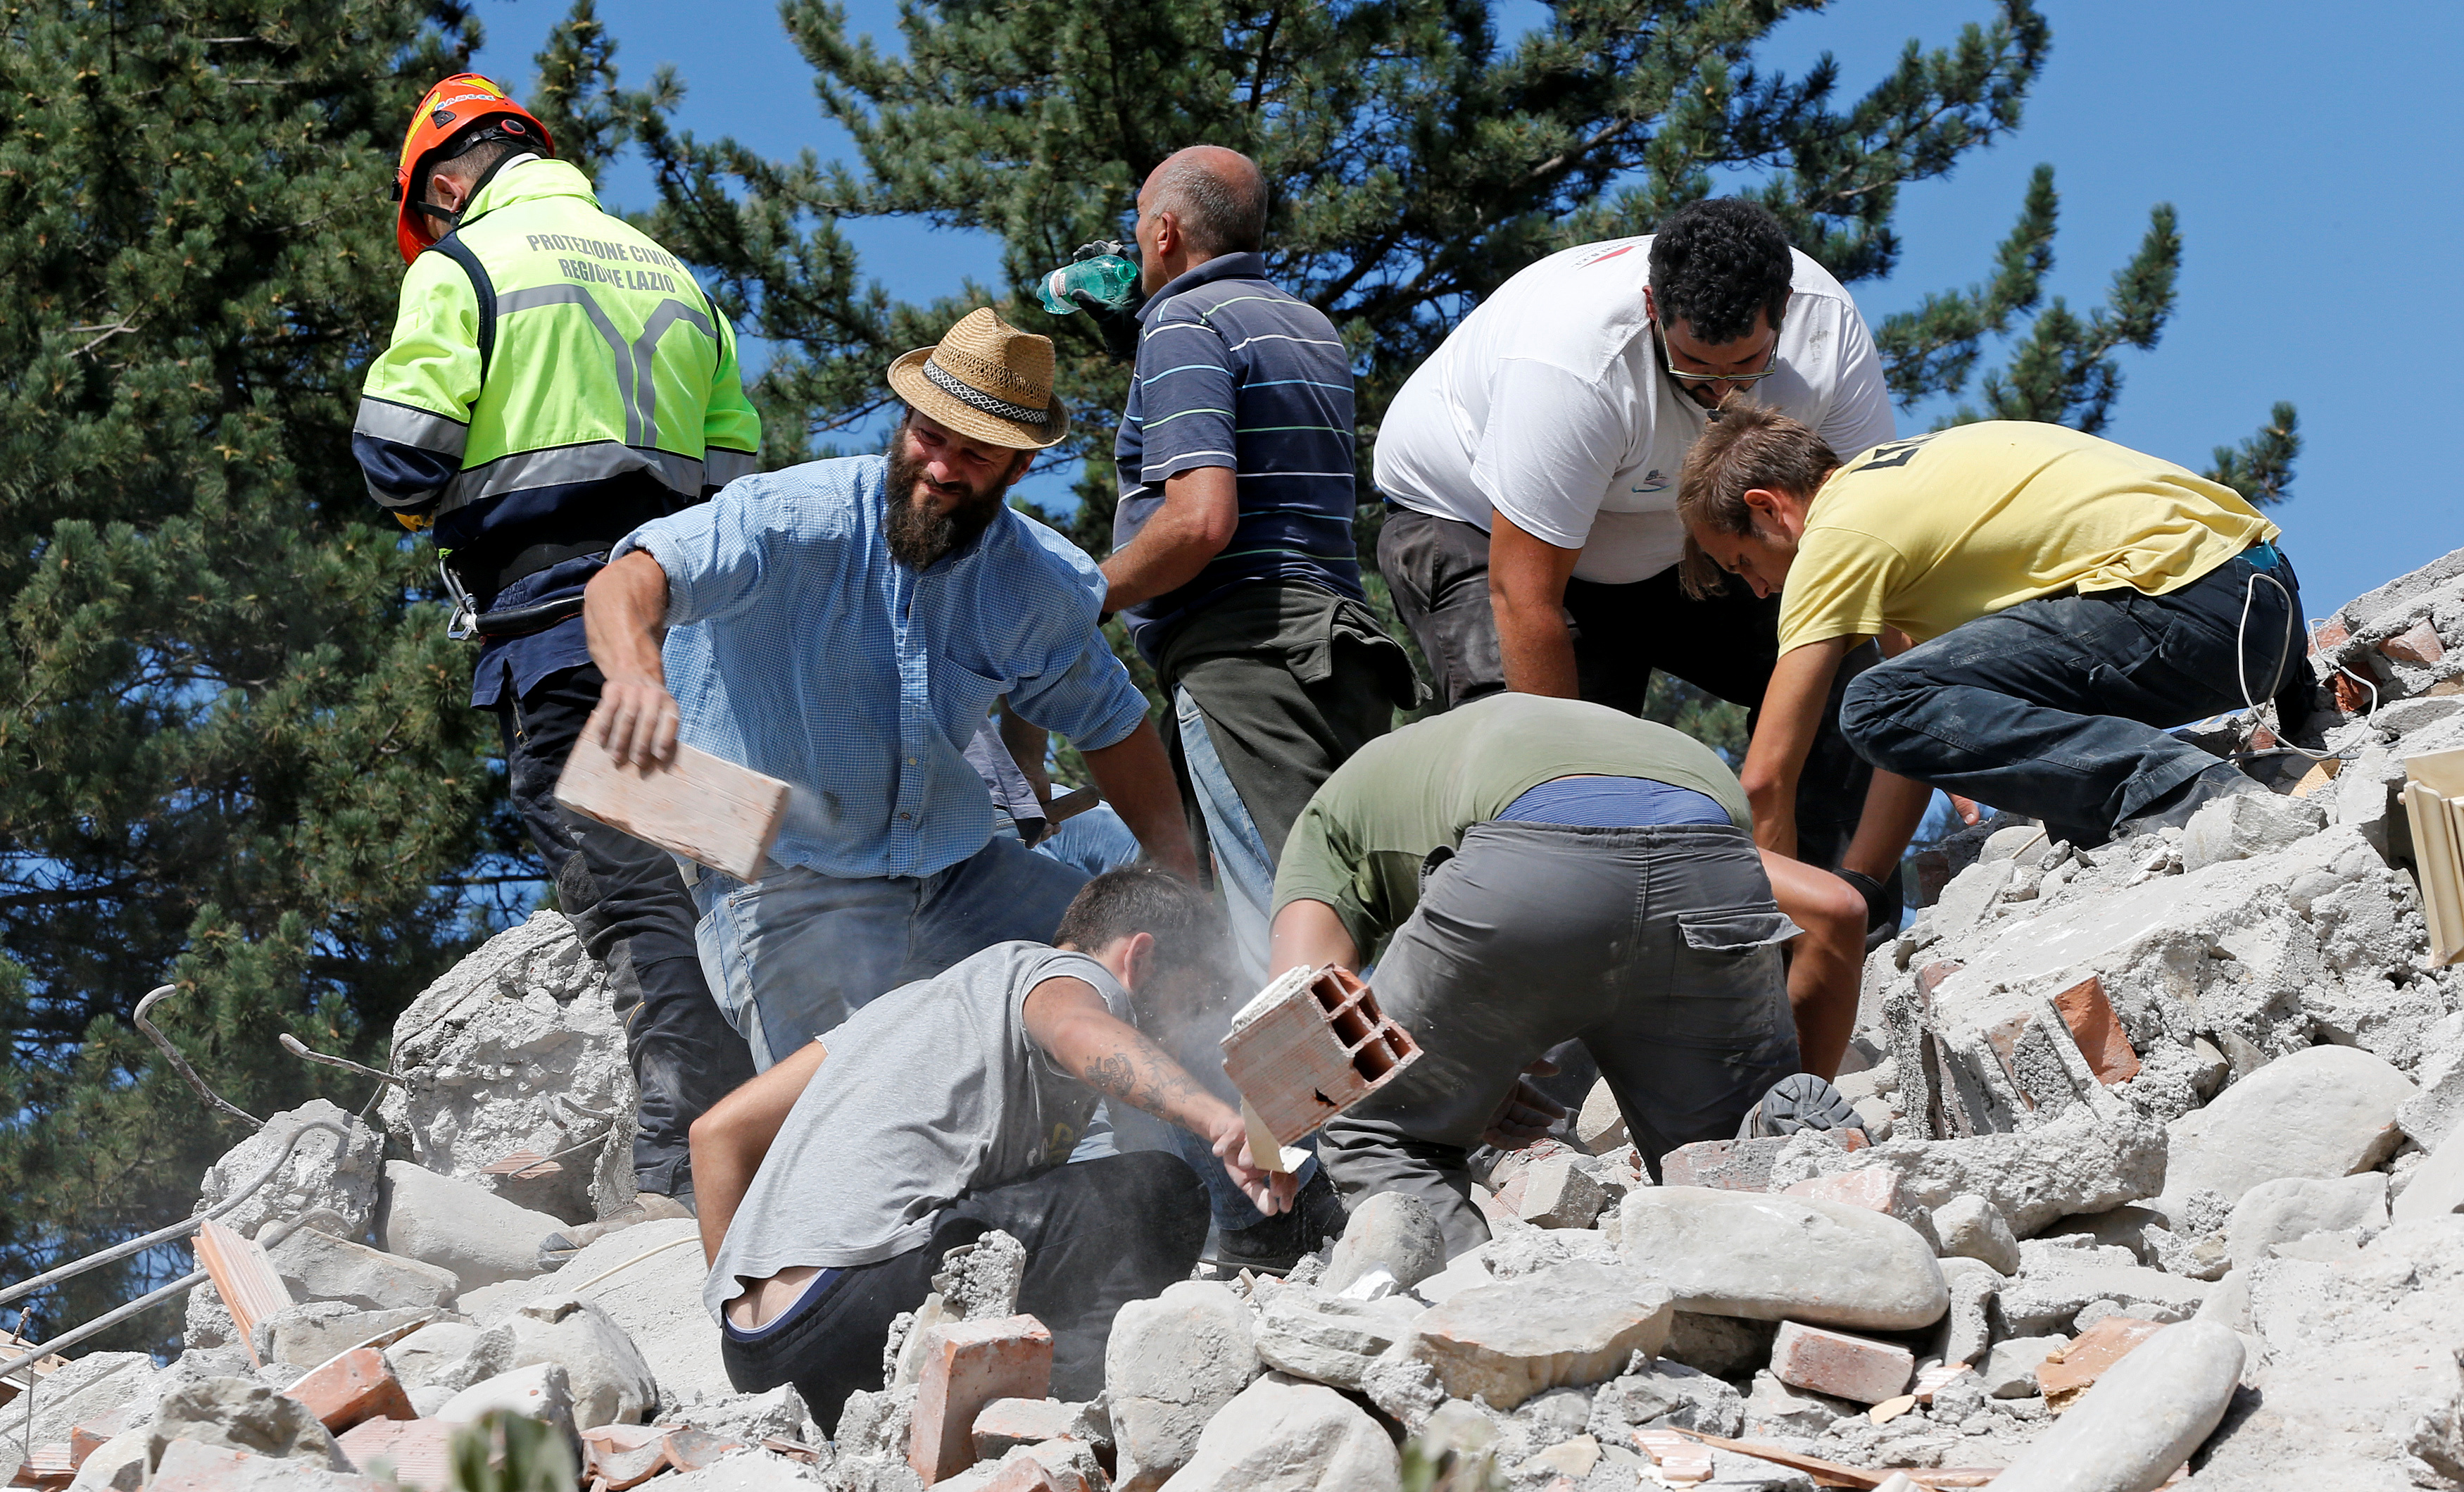 Rescuers work on a collapsed building following an earthquake in Amatrice, central Italy, Aug. 24, 2016.